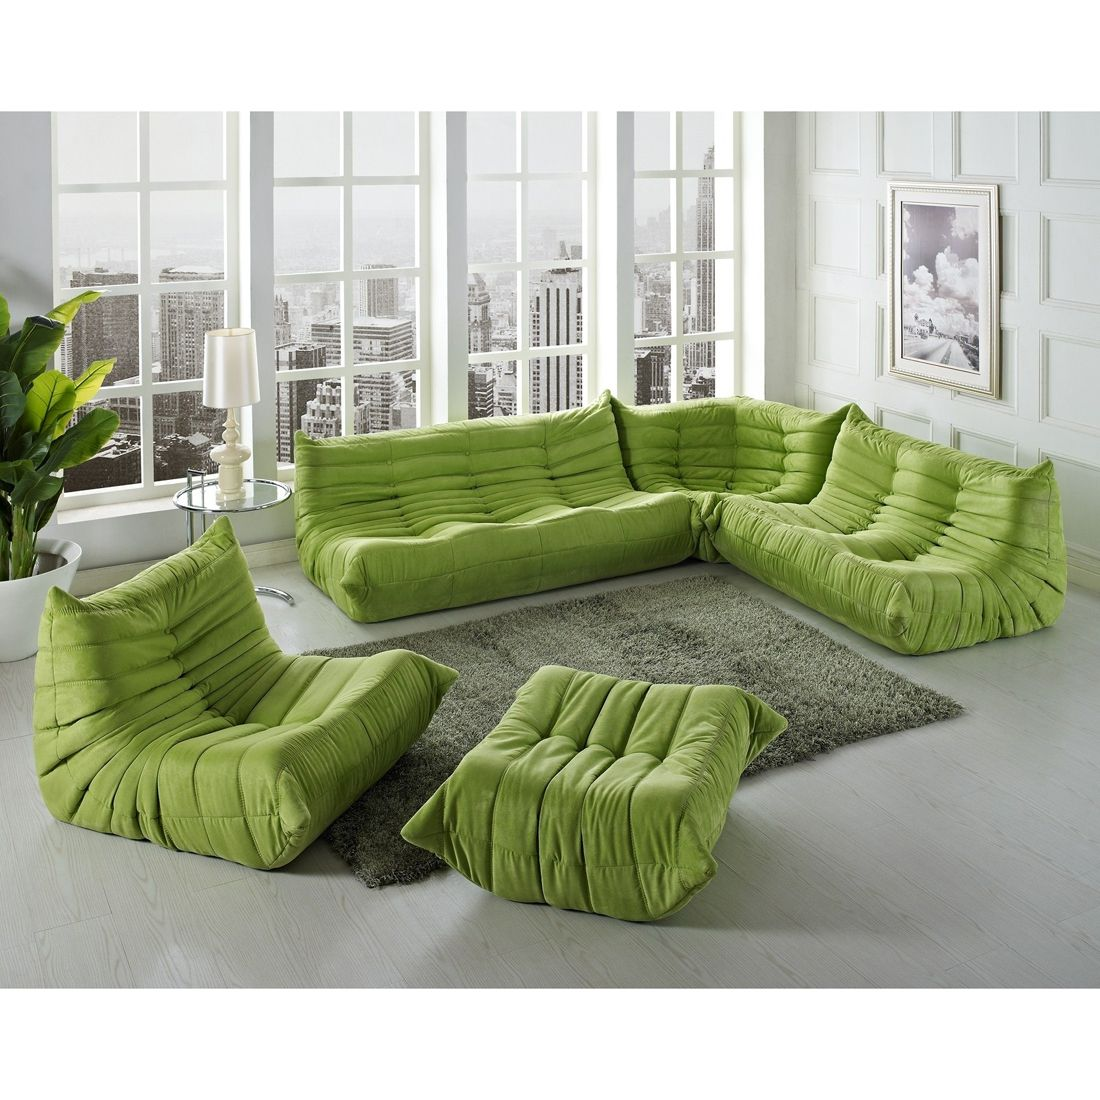 Attractive Awesome Low Sectional Sofa , Awesome Low Sectional Sofa 25 In Modern Sofa  Inspiration With Low